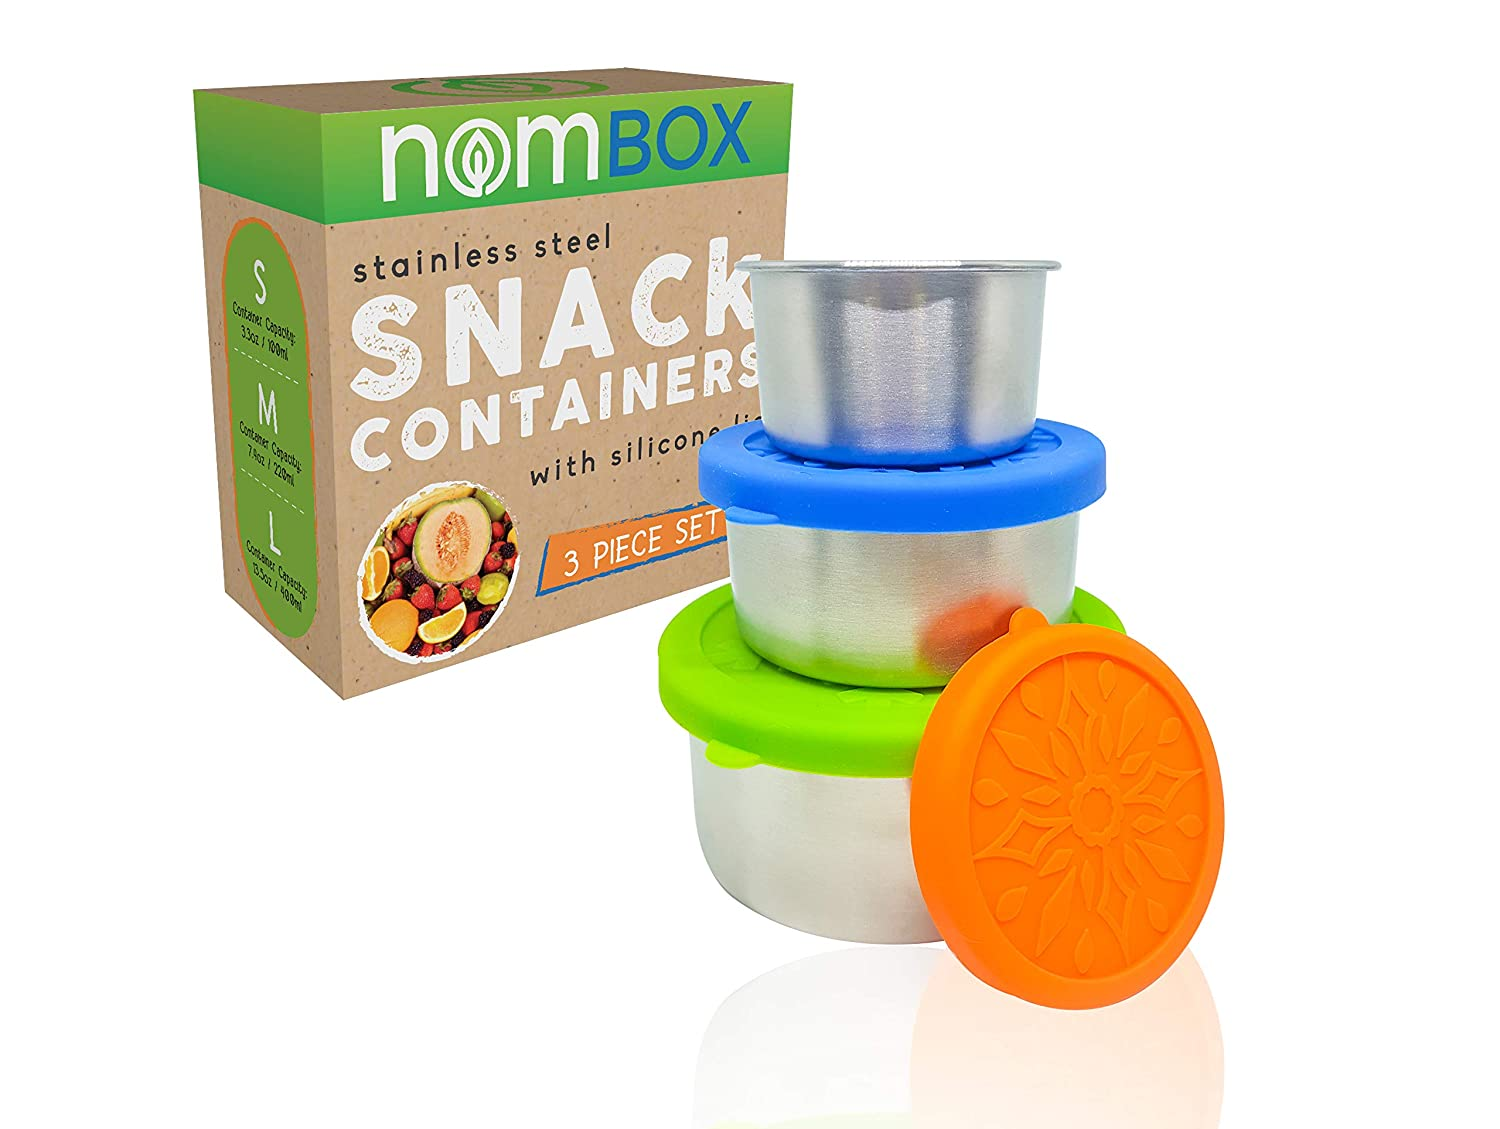 NomBox Stainless Steel Food Storage Containers – Set of 3 Kitchen Lunch/Snack Containers With Leak-proof Silicone Lids – Reusable & Washable – For Baby Food, Portion Control, Food Prep & Storing